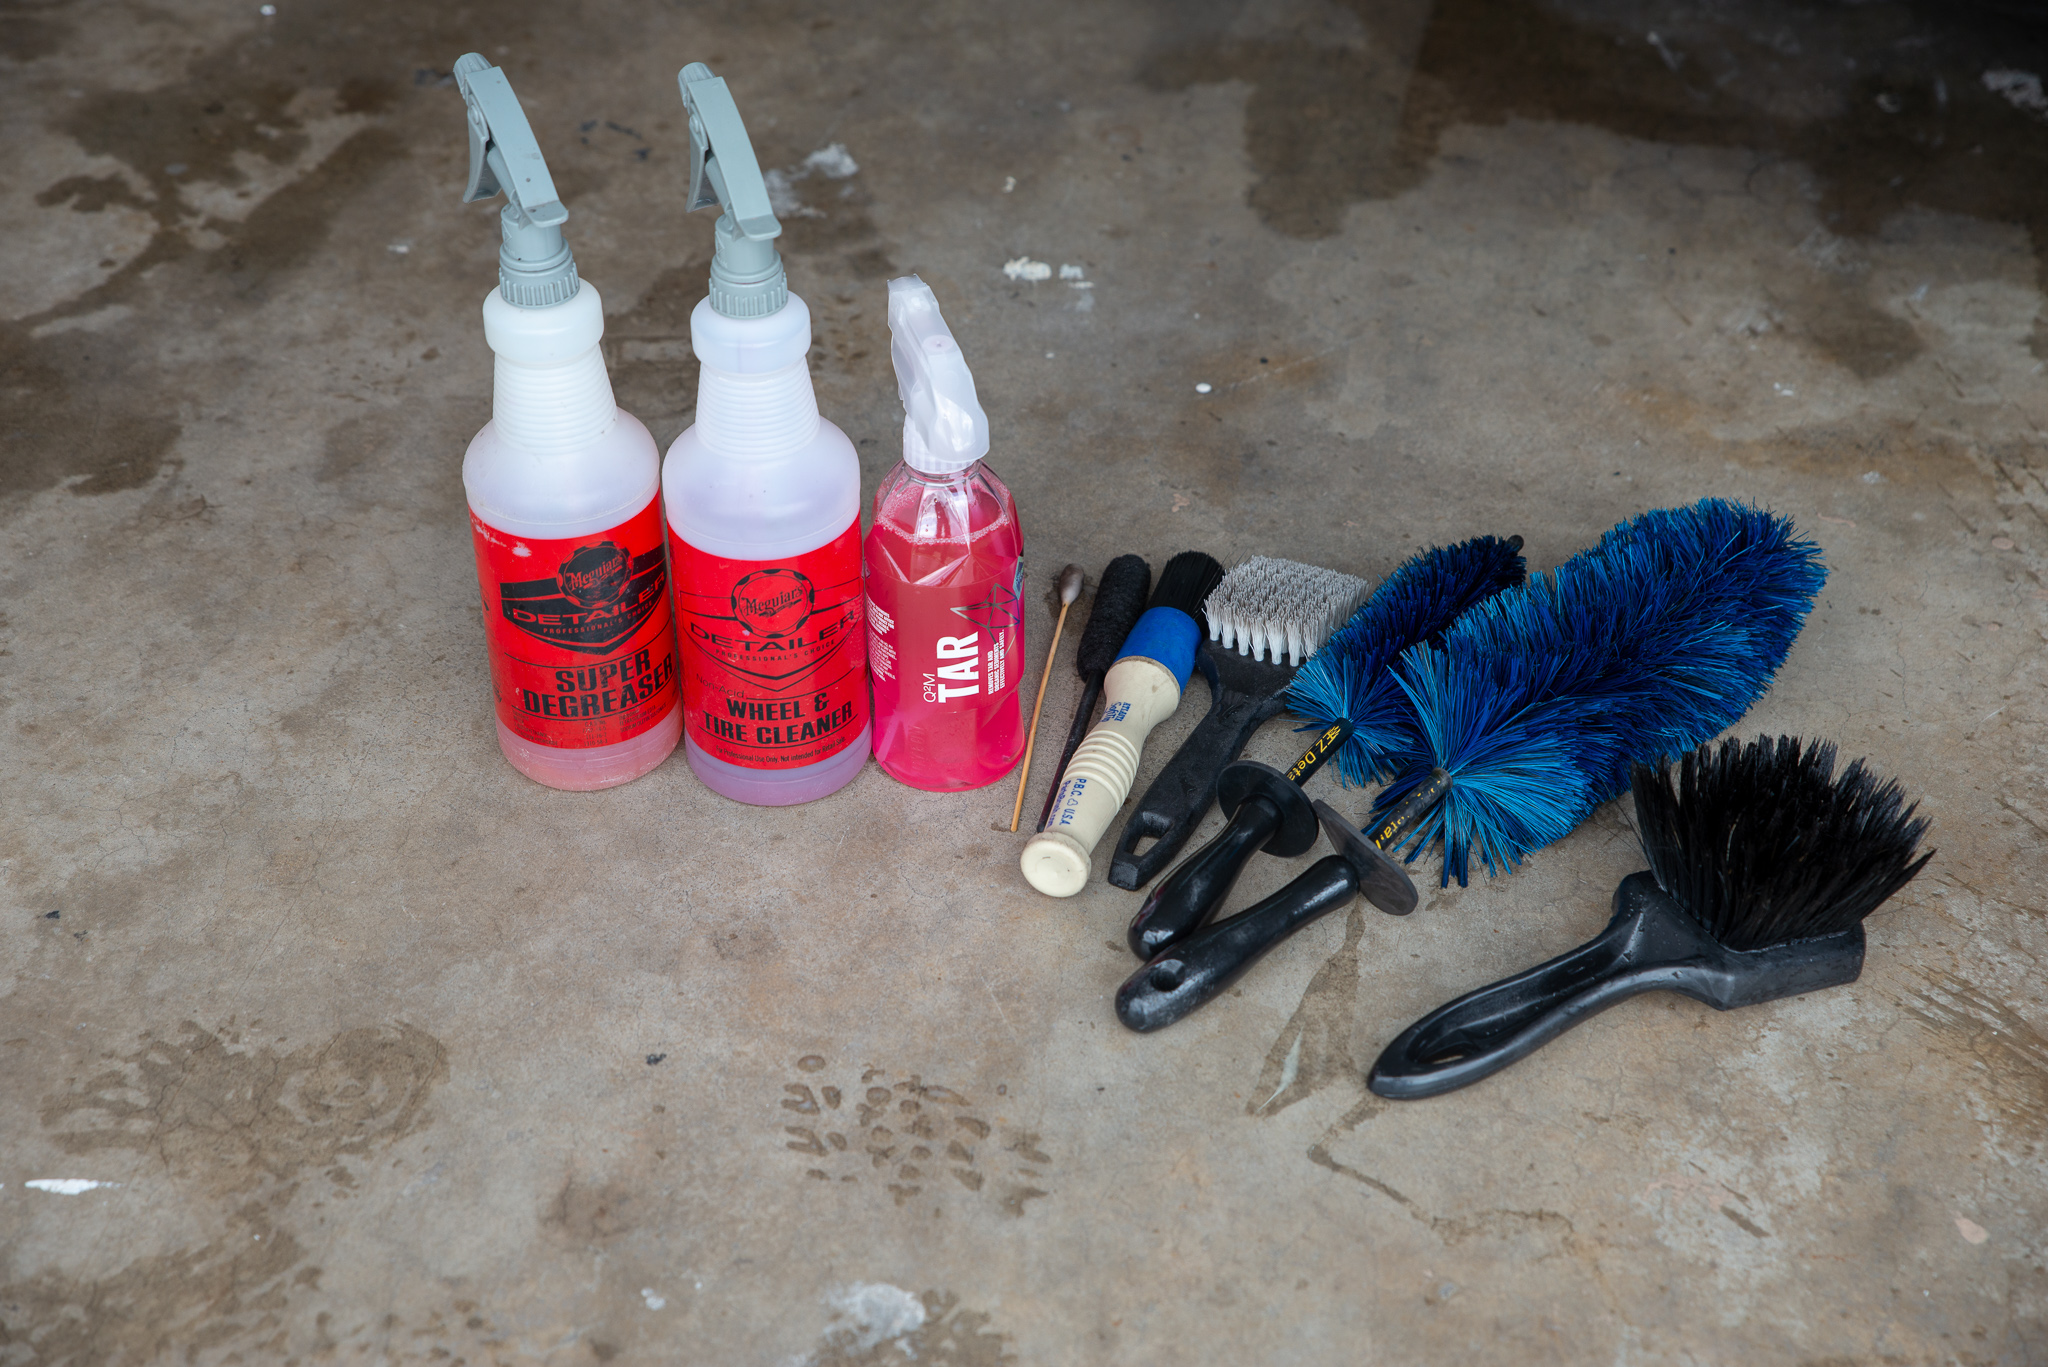 Meguiar's Super Degreaser and Wheel and Tire Cleaner, Gyeon Tar Remover, and a variety of brushes